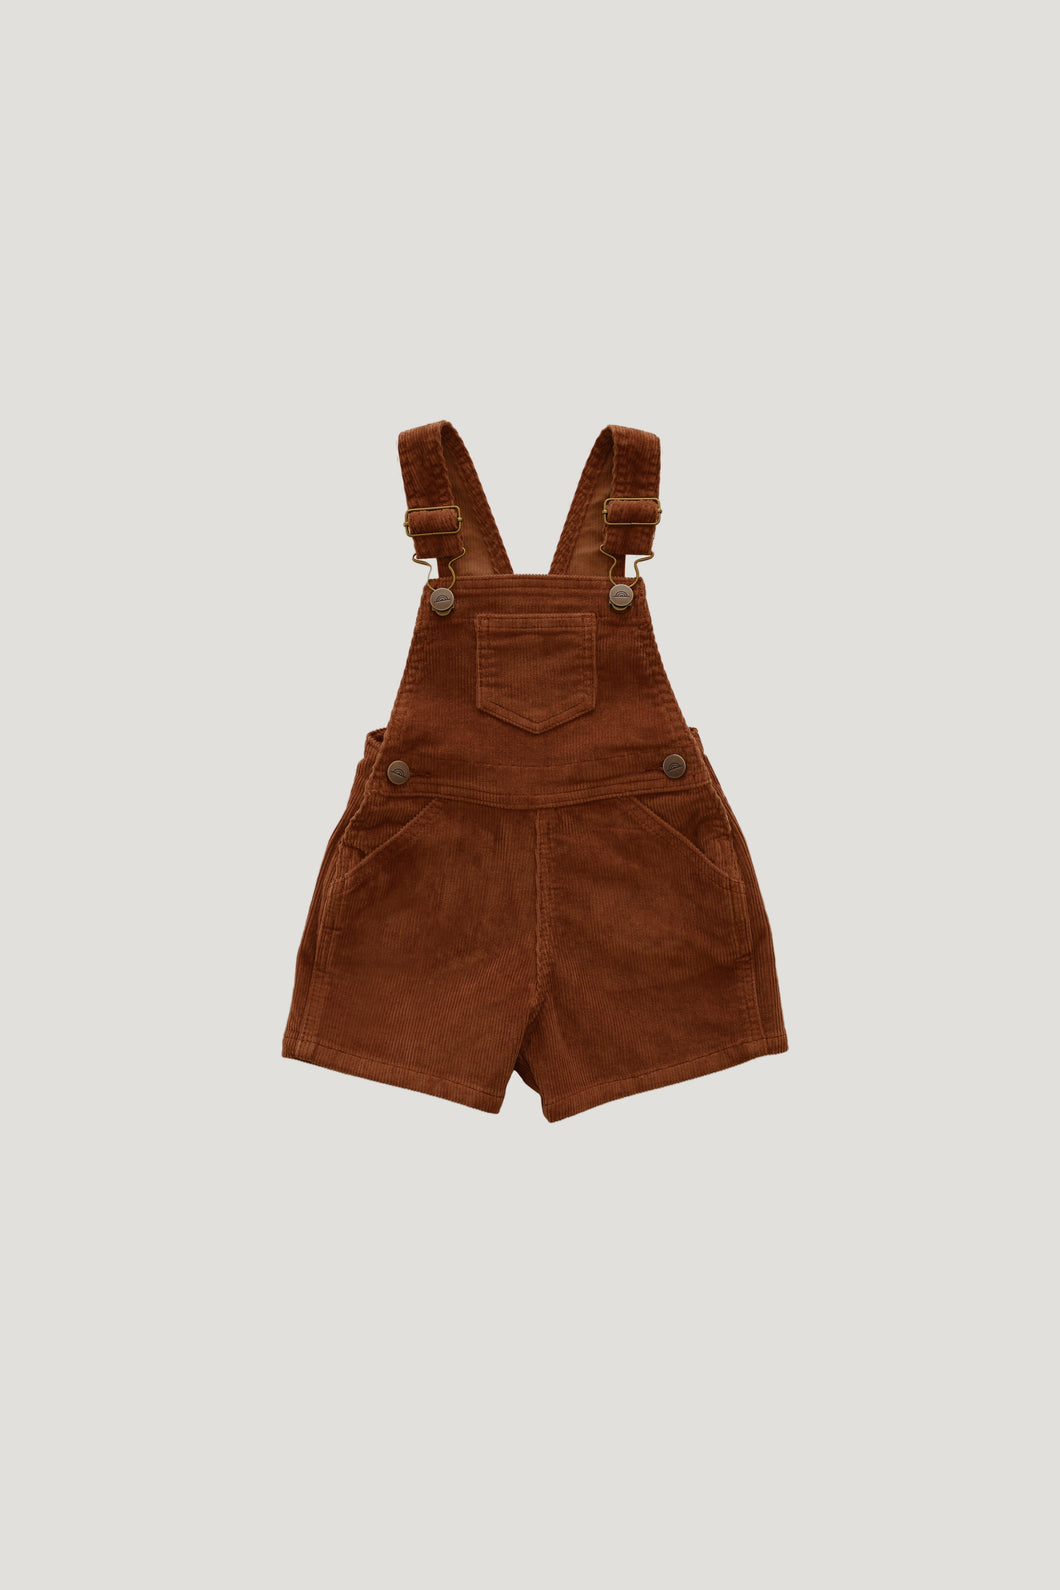 Jamie Kay Reign short overall - gingerbread